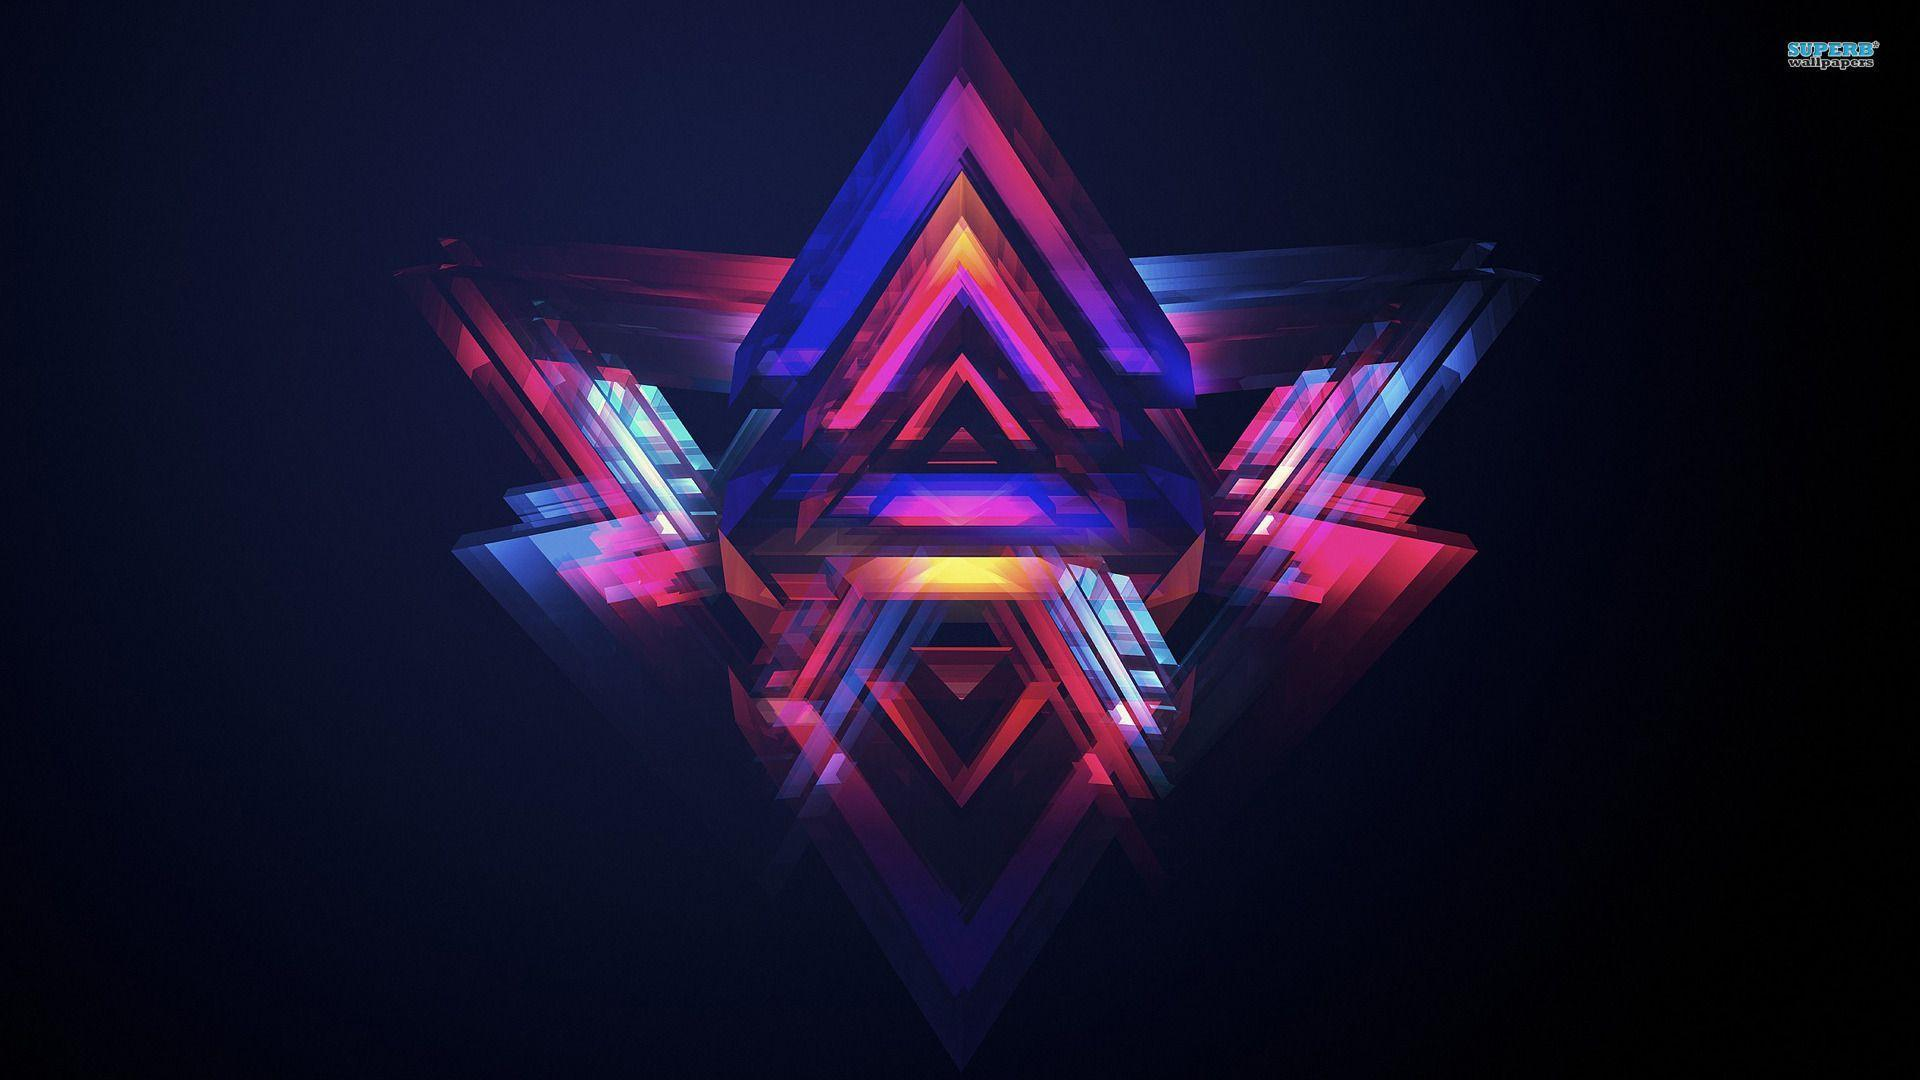 illuminati triangle wallpaper hd - photo #7